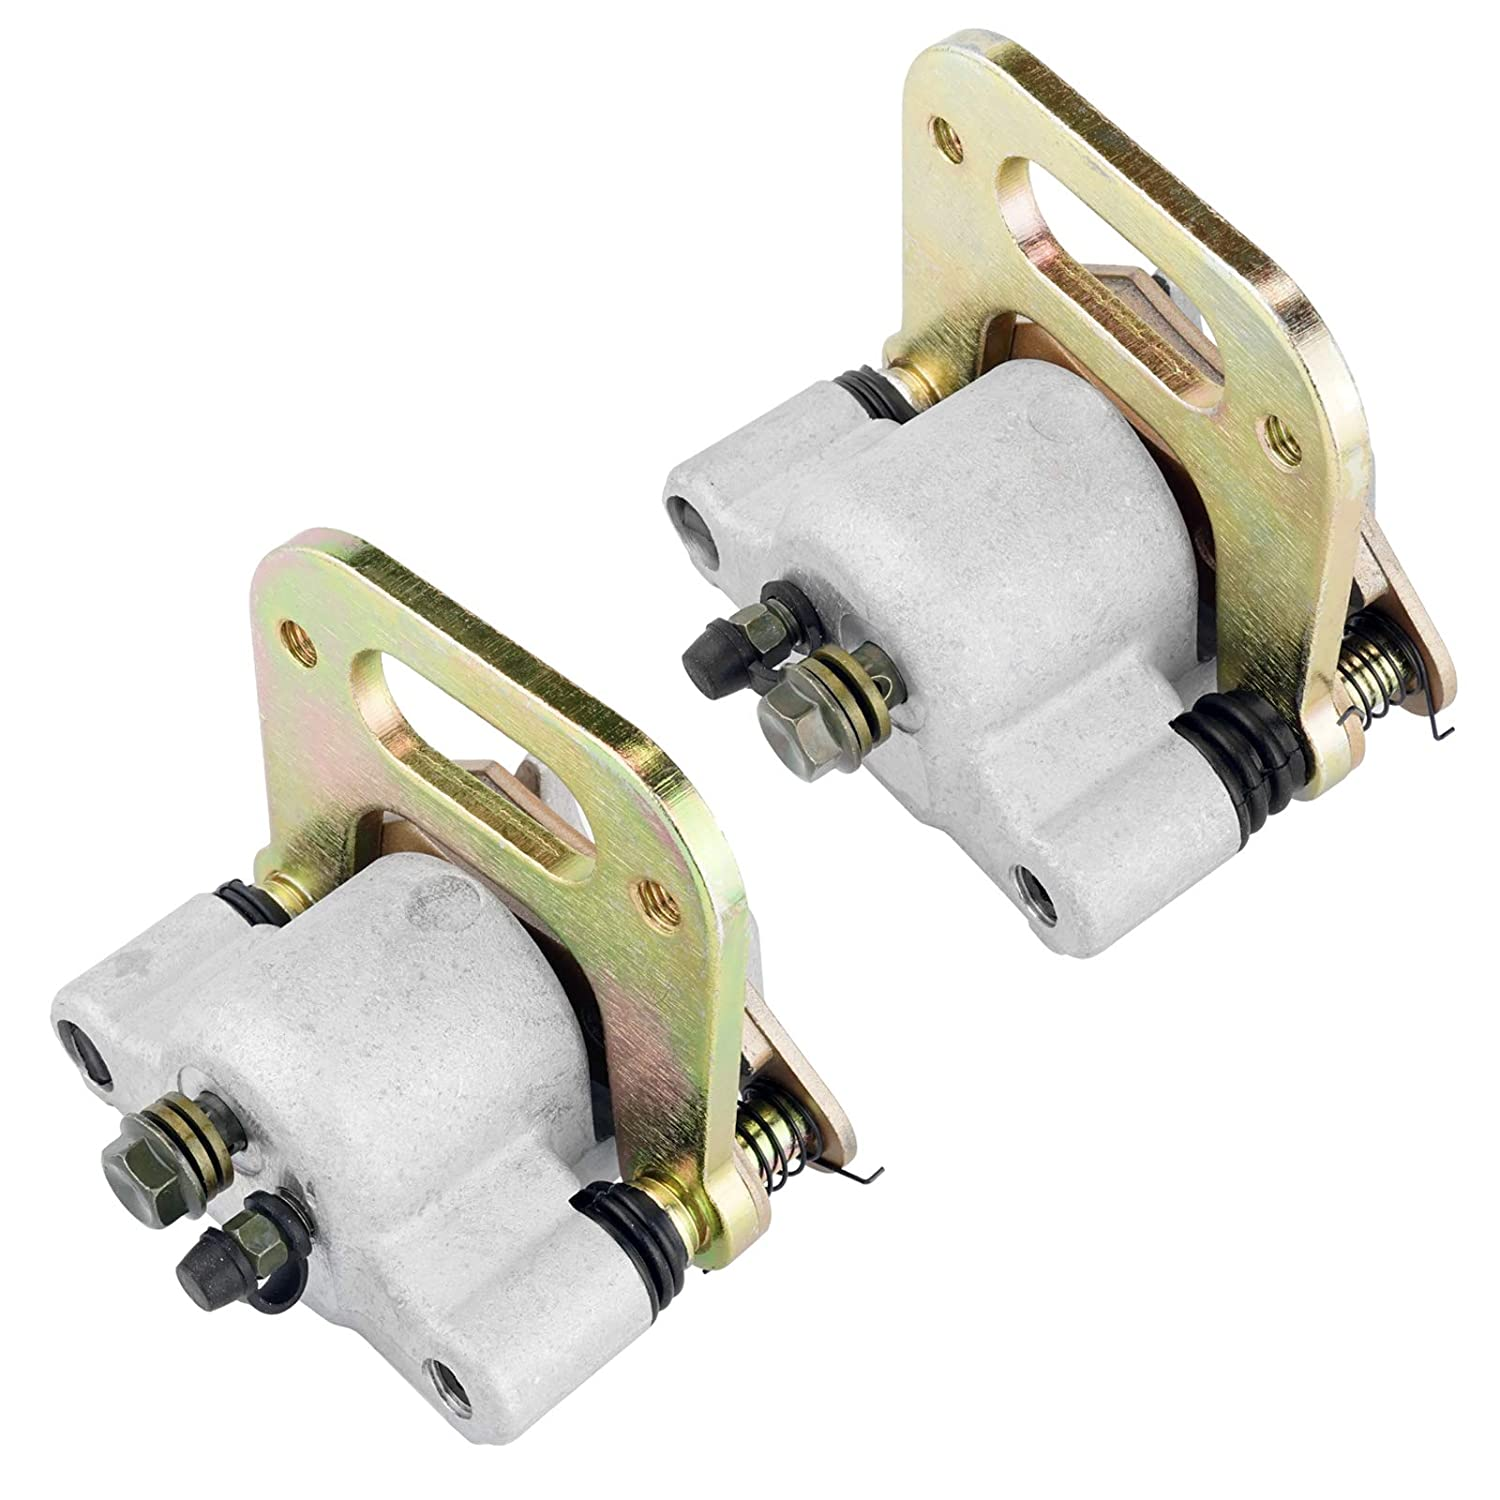 CALTRIC FRONT LEFT and RIGHT BRAKE CALIPER w//PADS FOR Polaris RANGER 500 6X6 1999